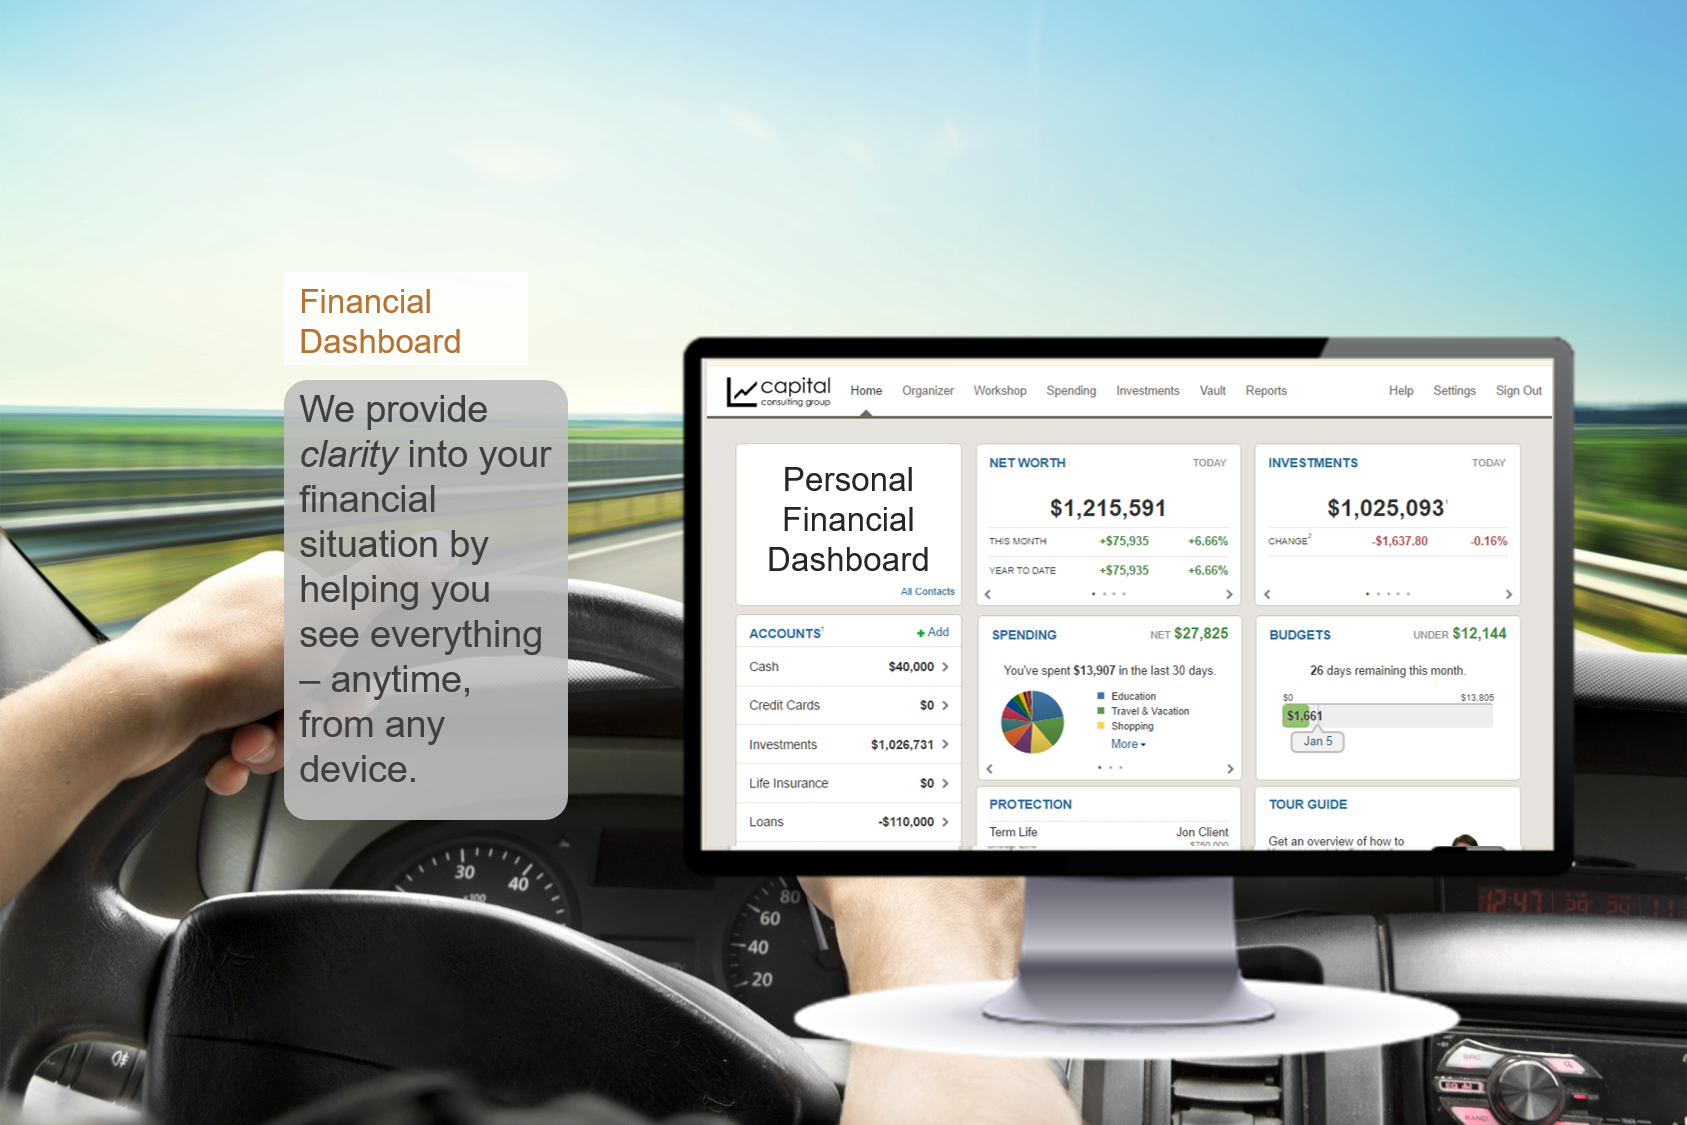 Services - 5 Financial Dashboard.png